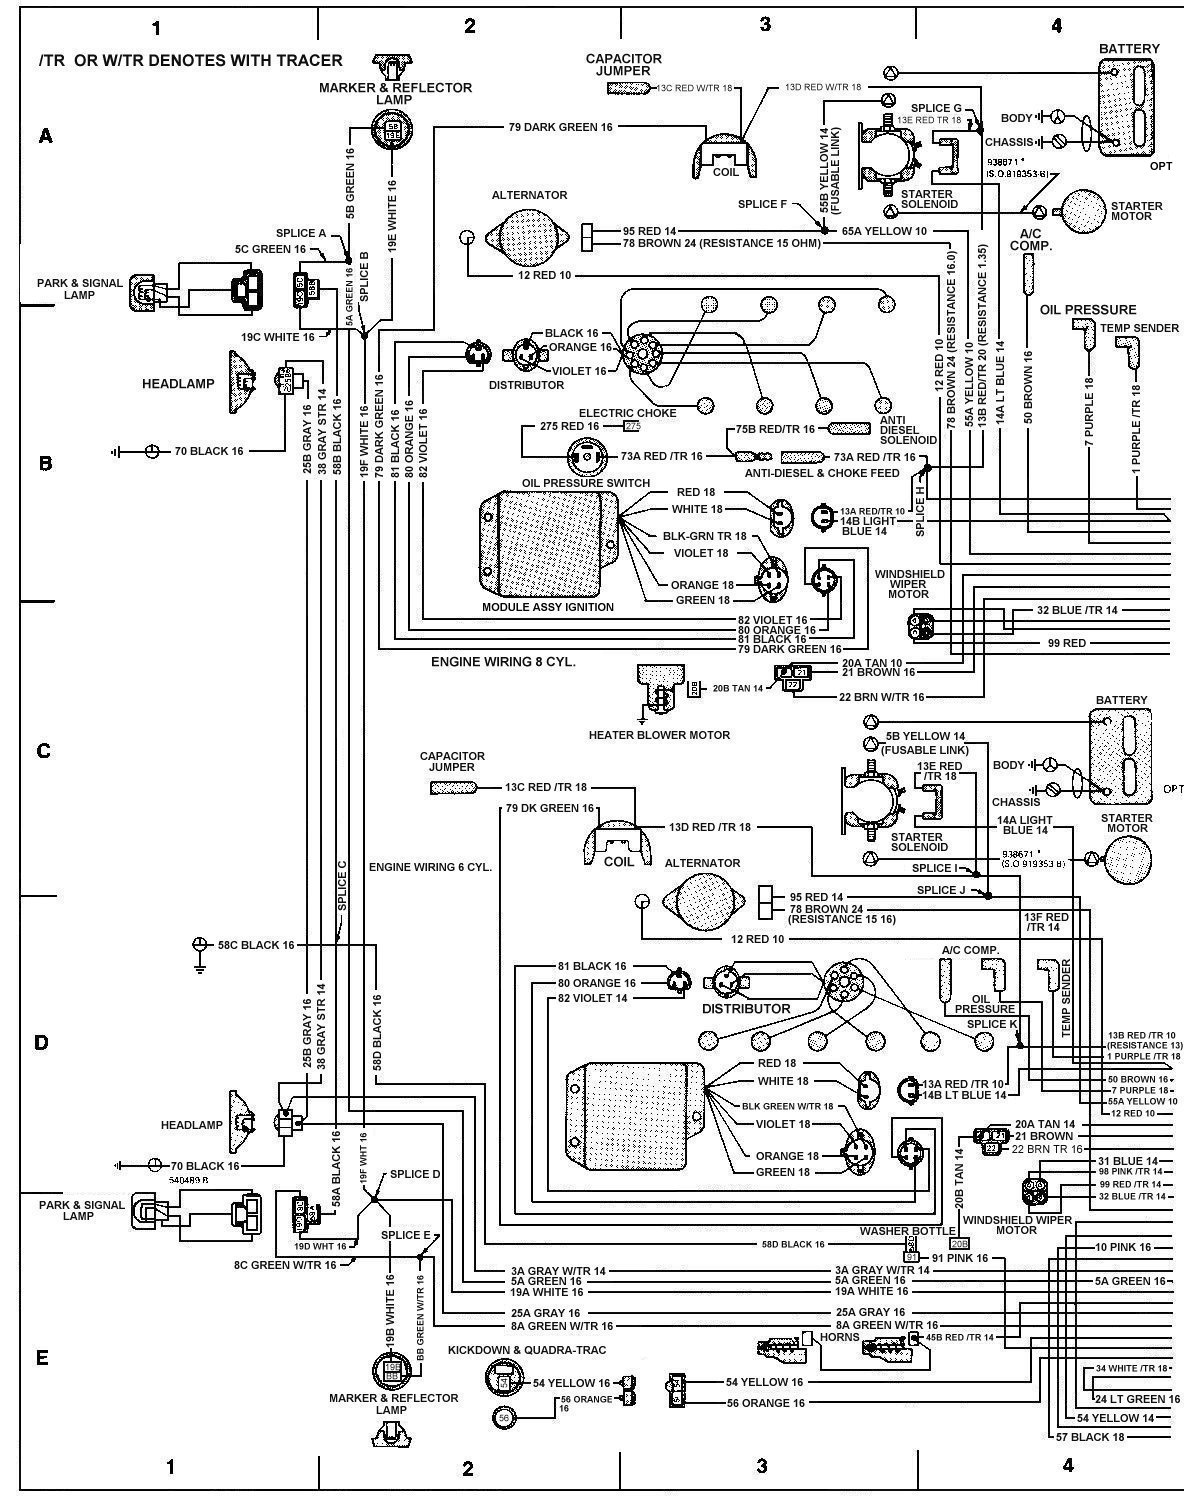 Mustang Battery Disconnect Switch Wiring Diagram